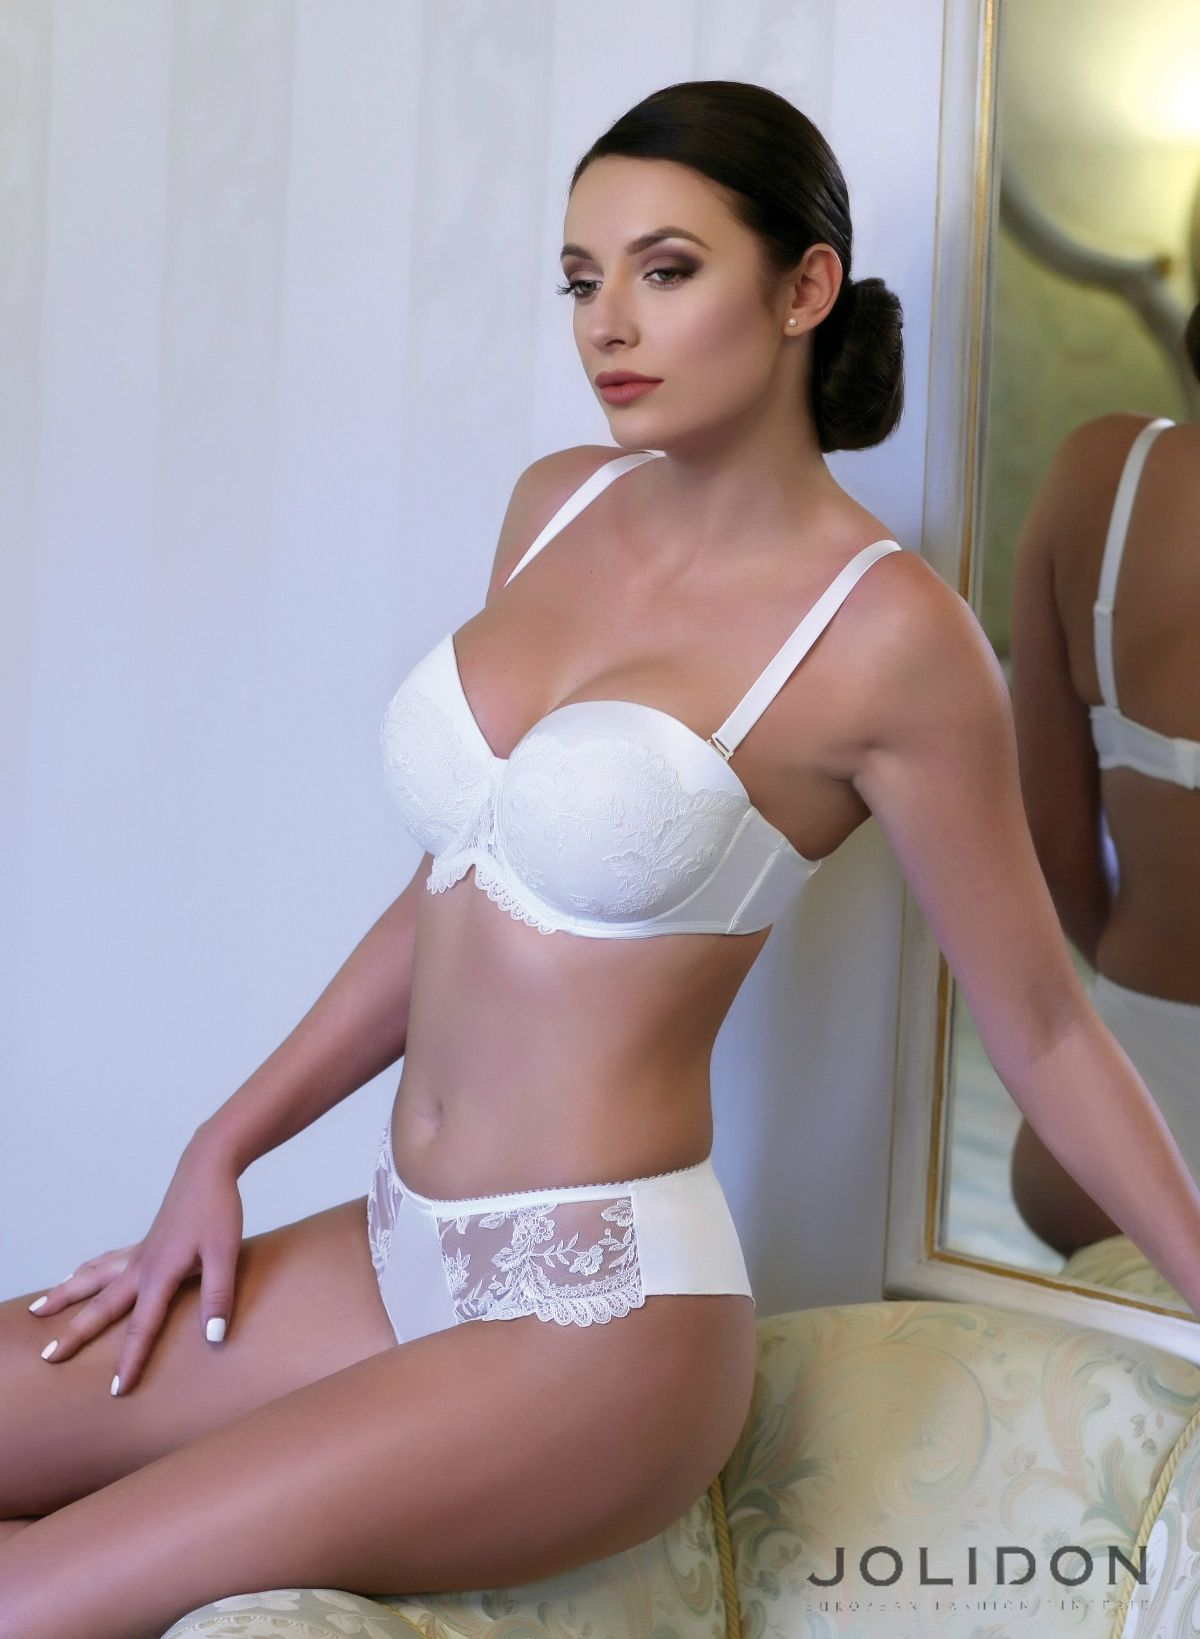 Pin on Lingerie&Fashion